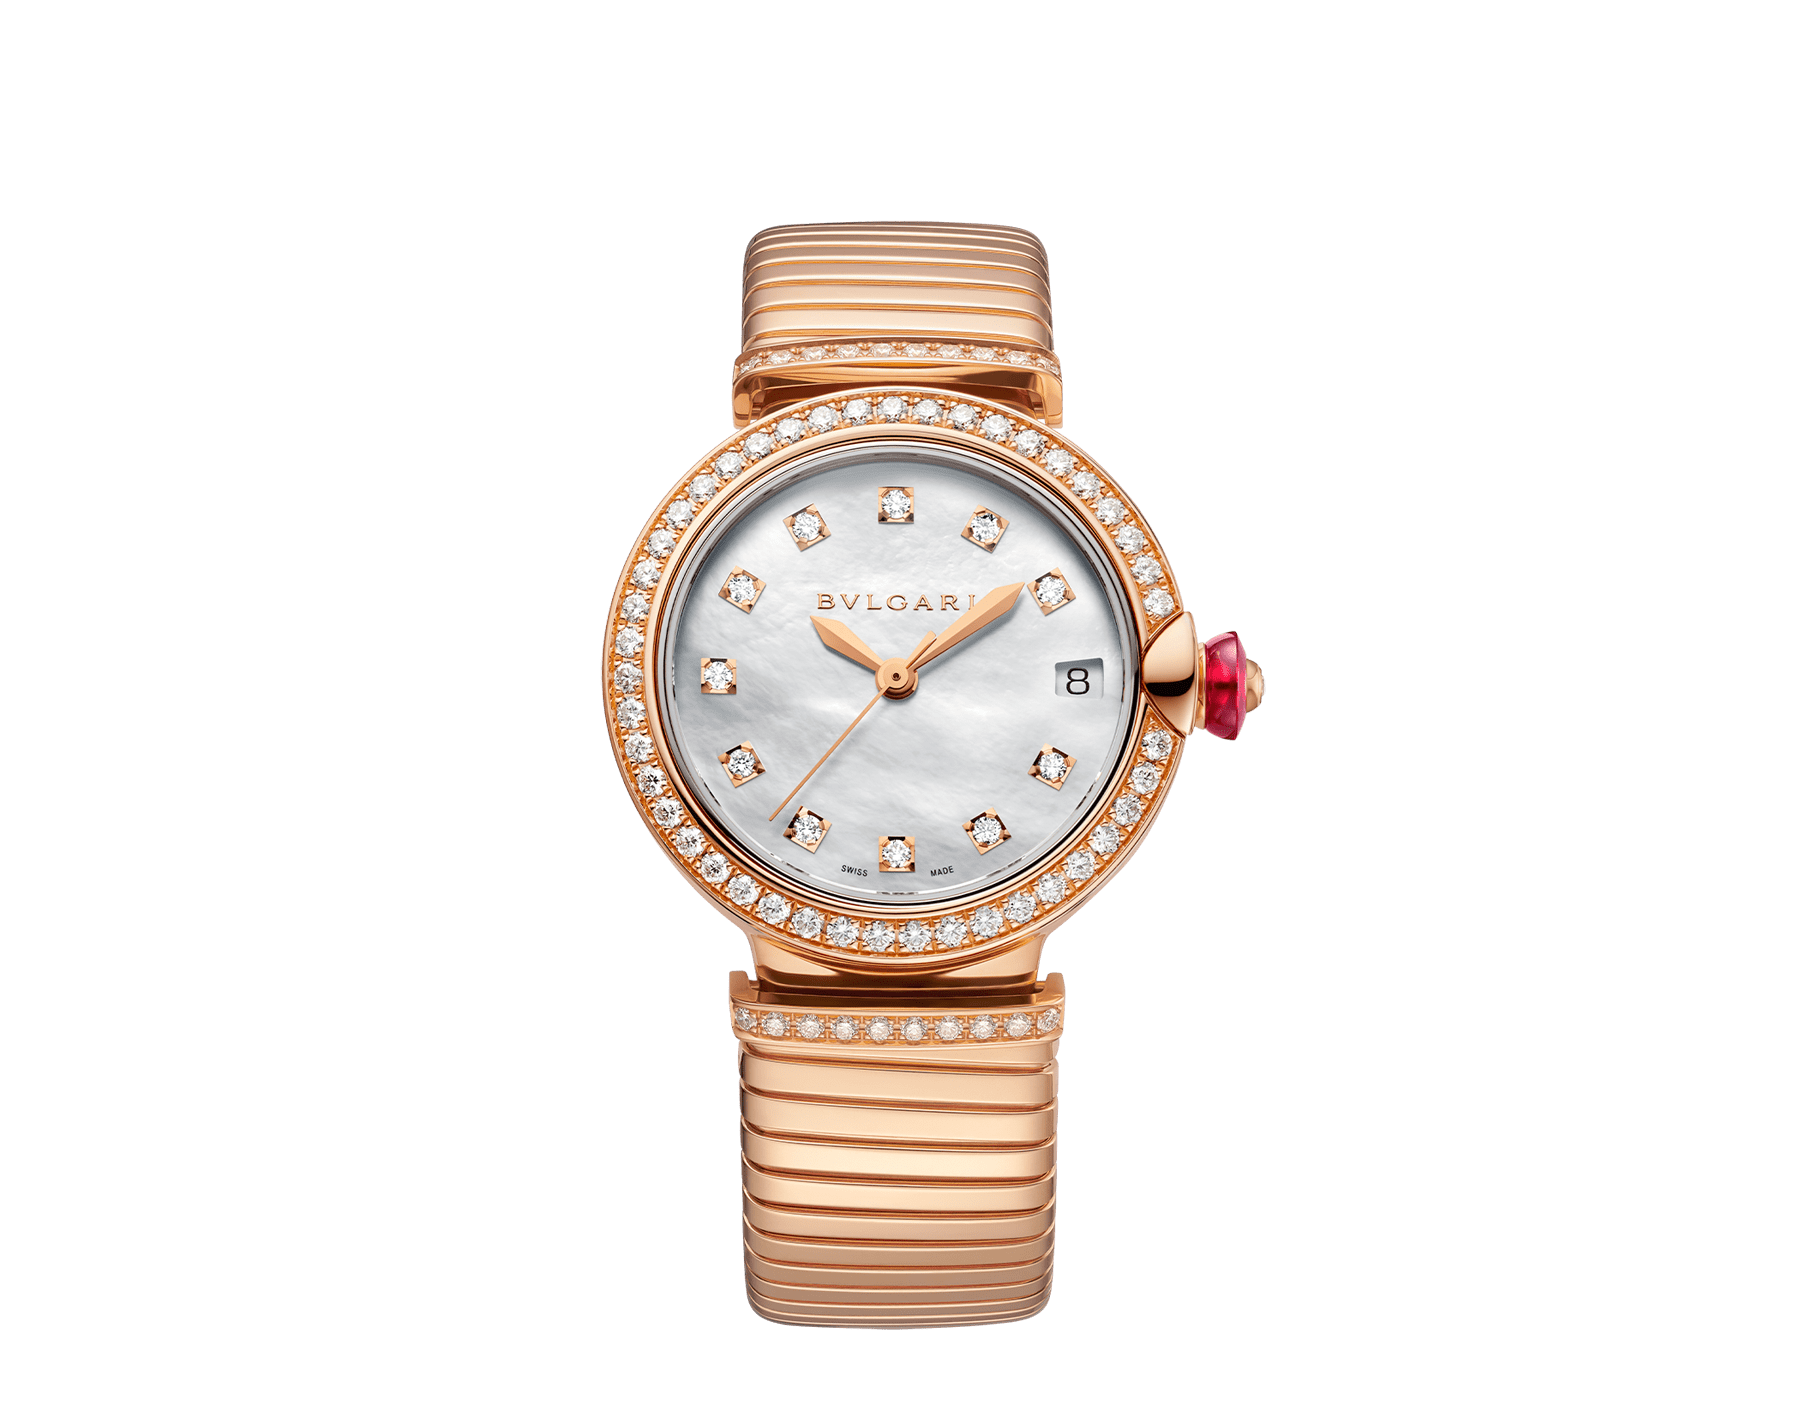 LVCEA Tubogas watch with 18 kt rose gold case set with diamonds, white mother-of-pearl dial, diamond indexes and 18 kt rose gold tubogas bracelet 103034 image 1